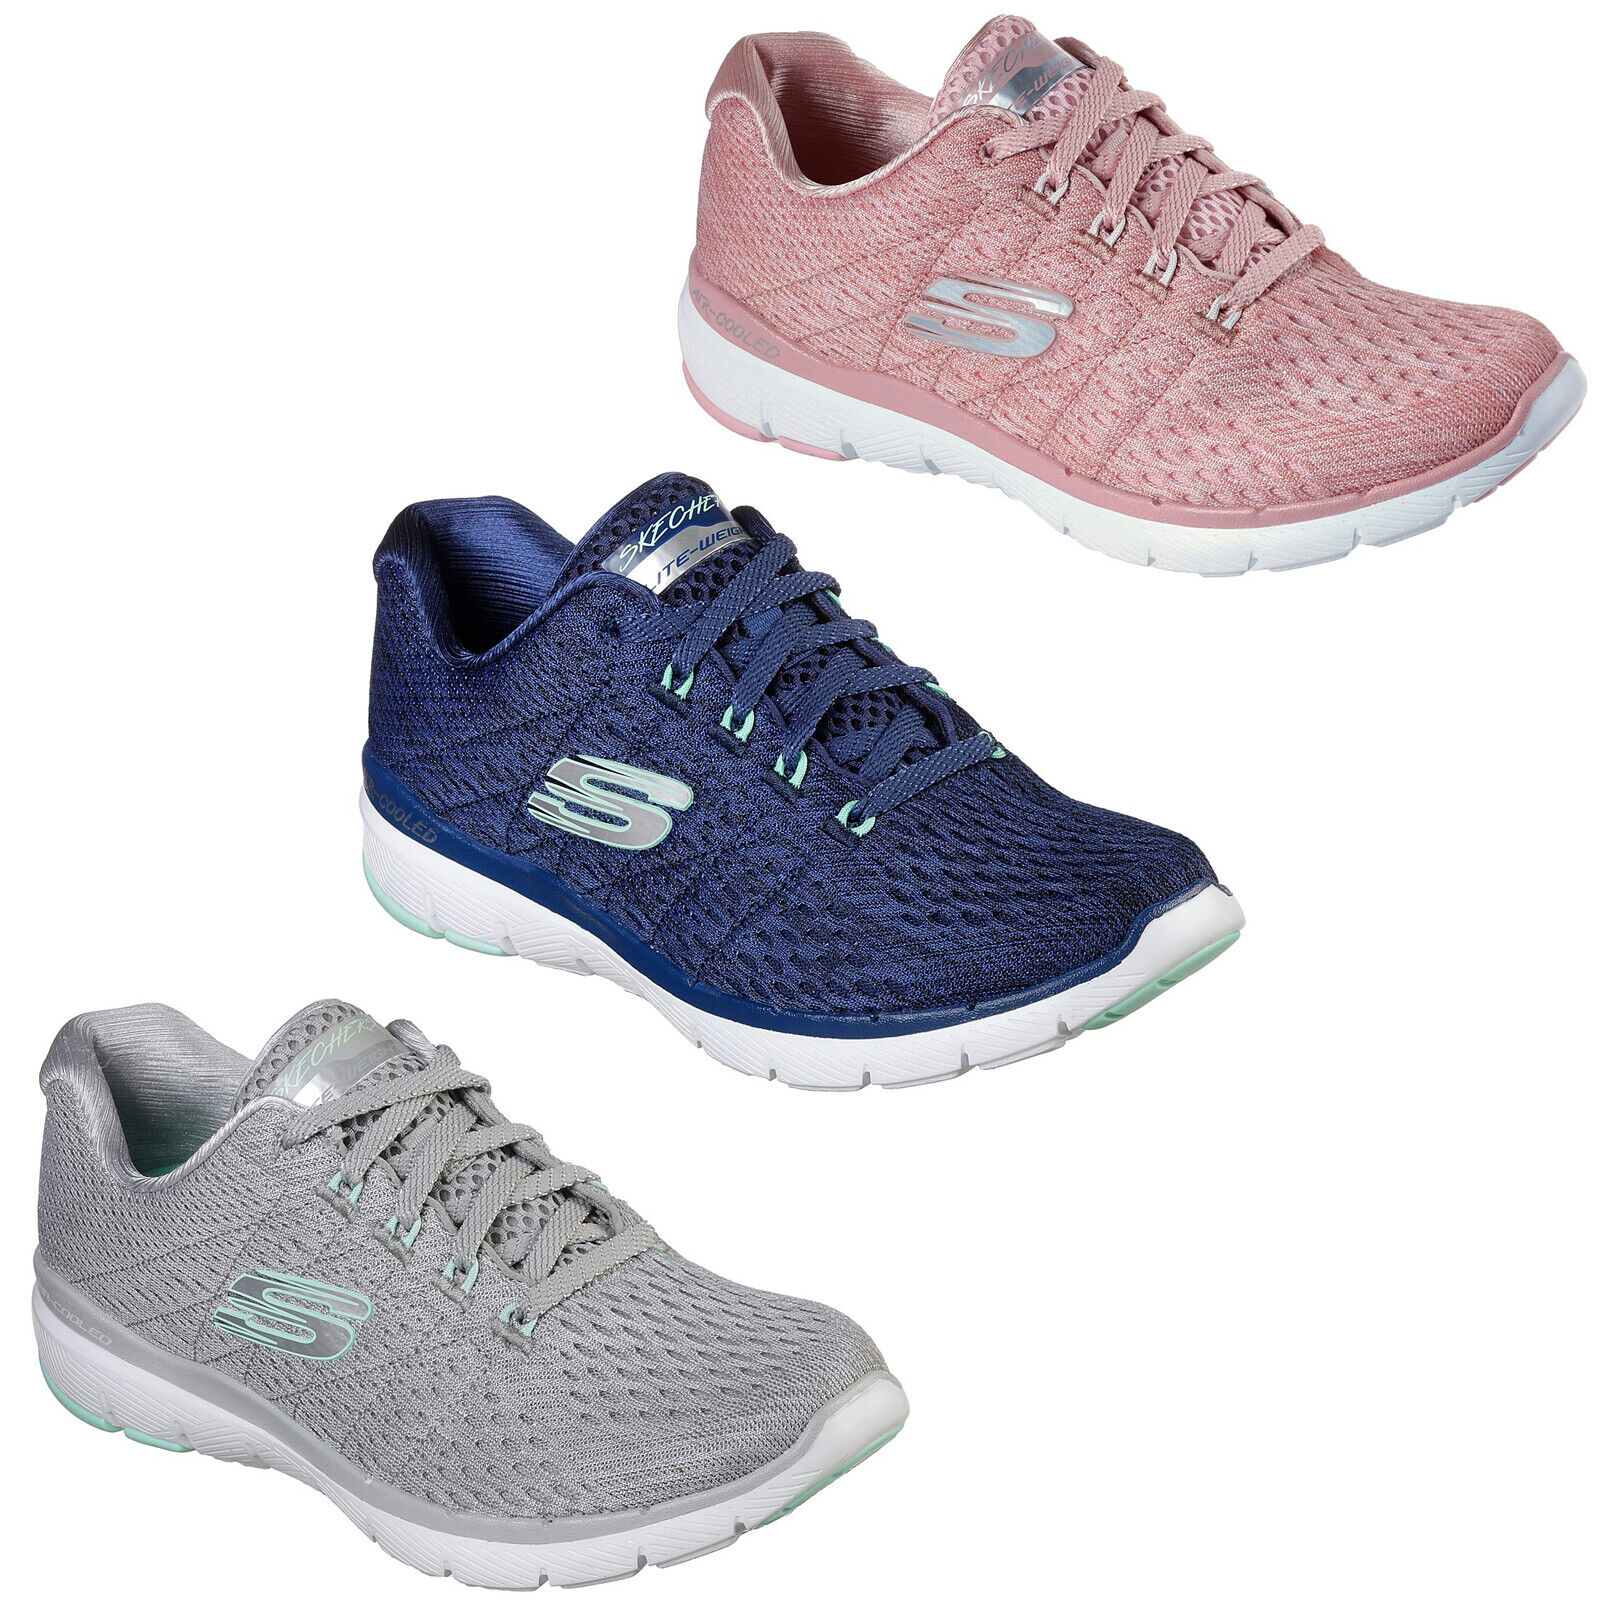 Skechers Flex Appeal 3.0 - Satellites Trainers Sporty Melange shoes Womens 13064